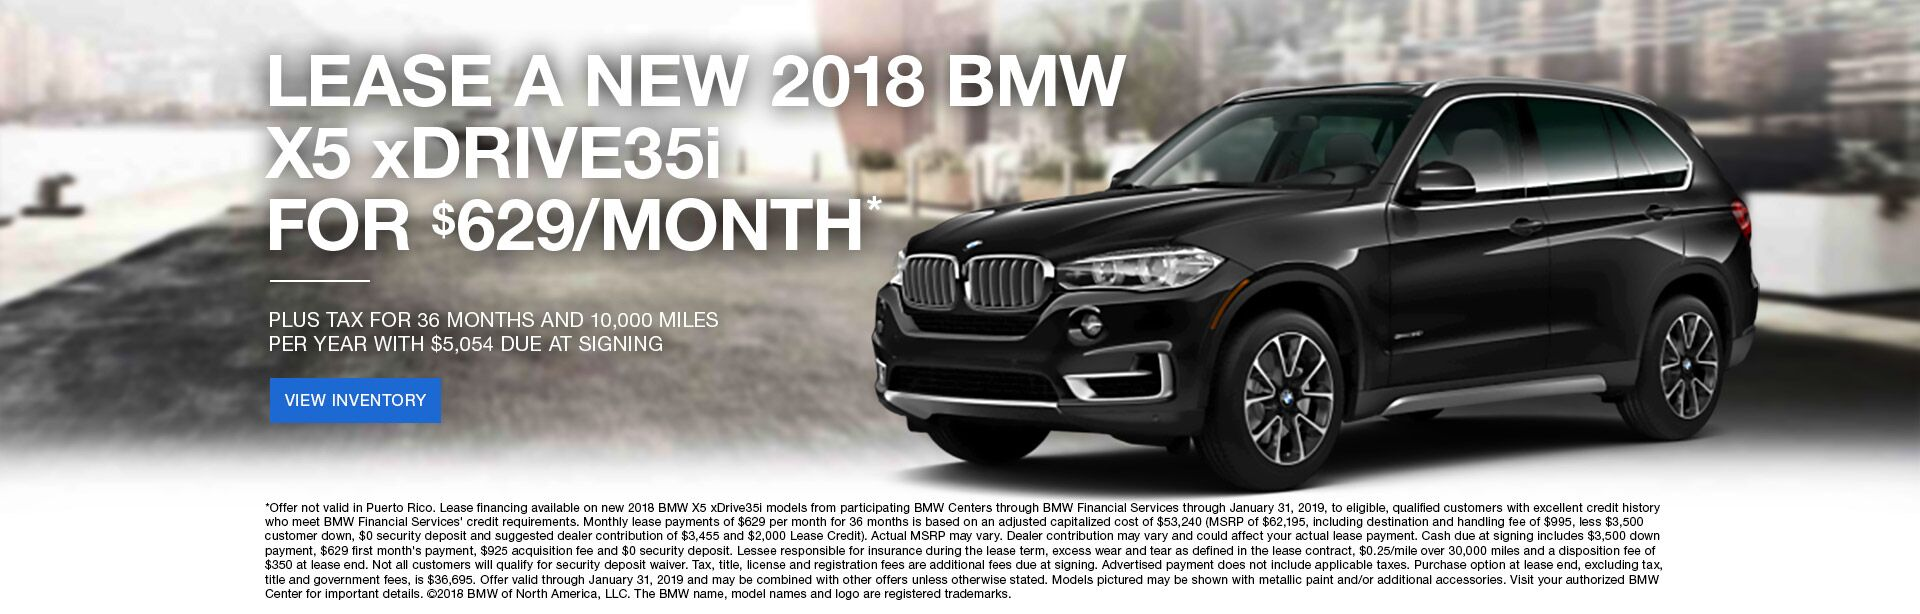 BMW X5 sDRIVE35i